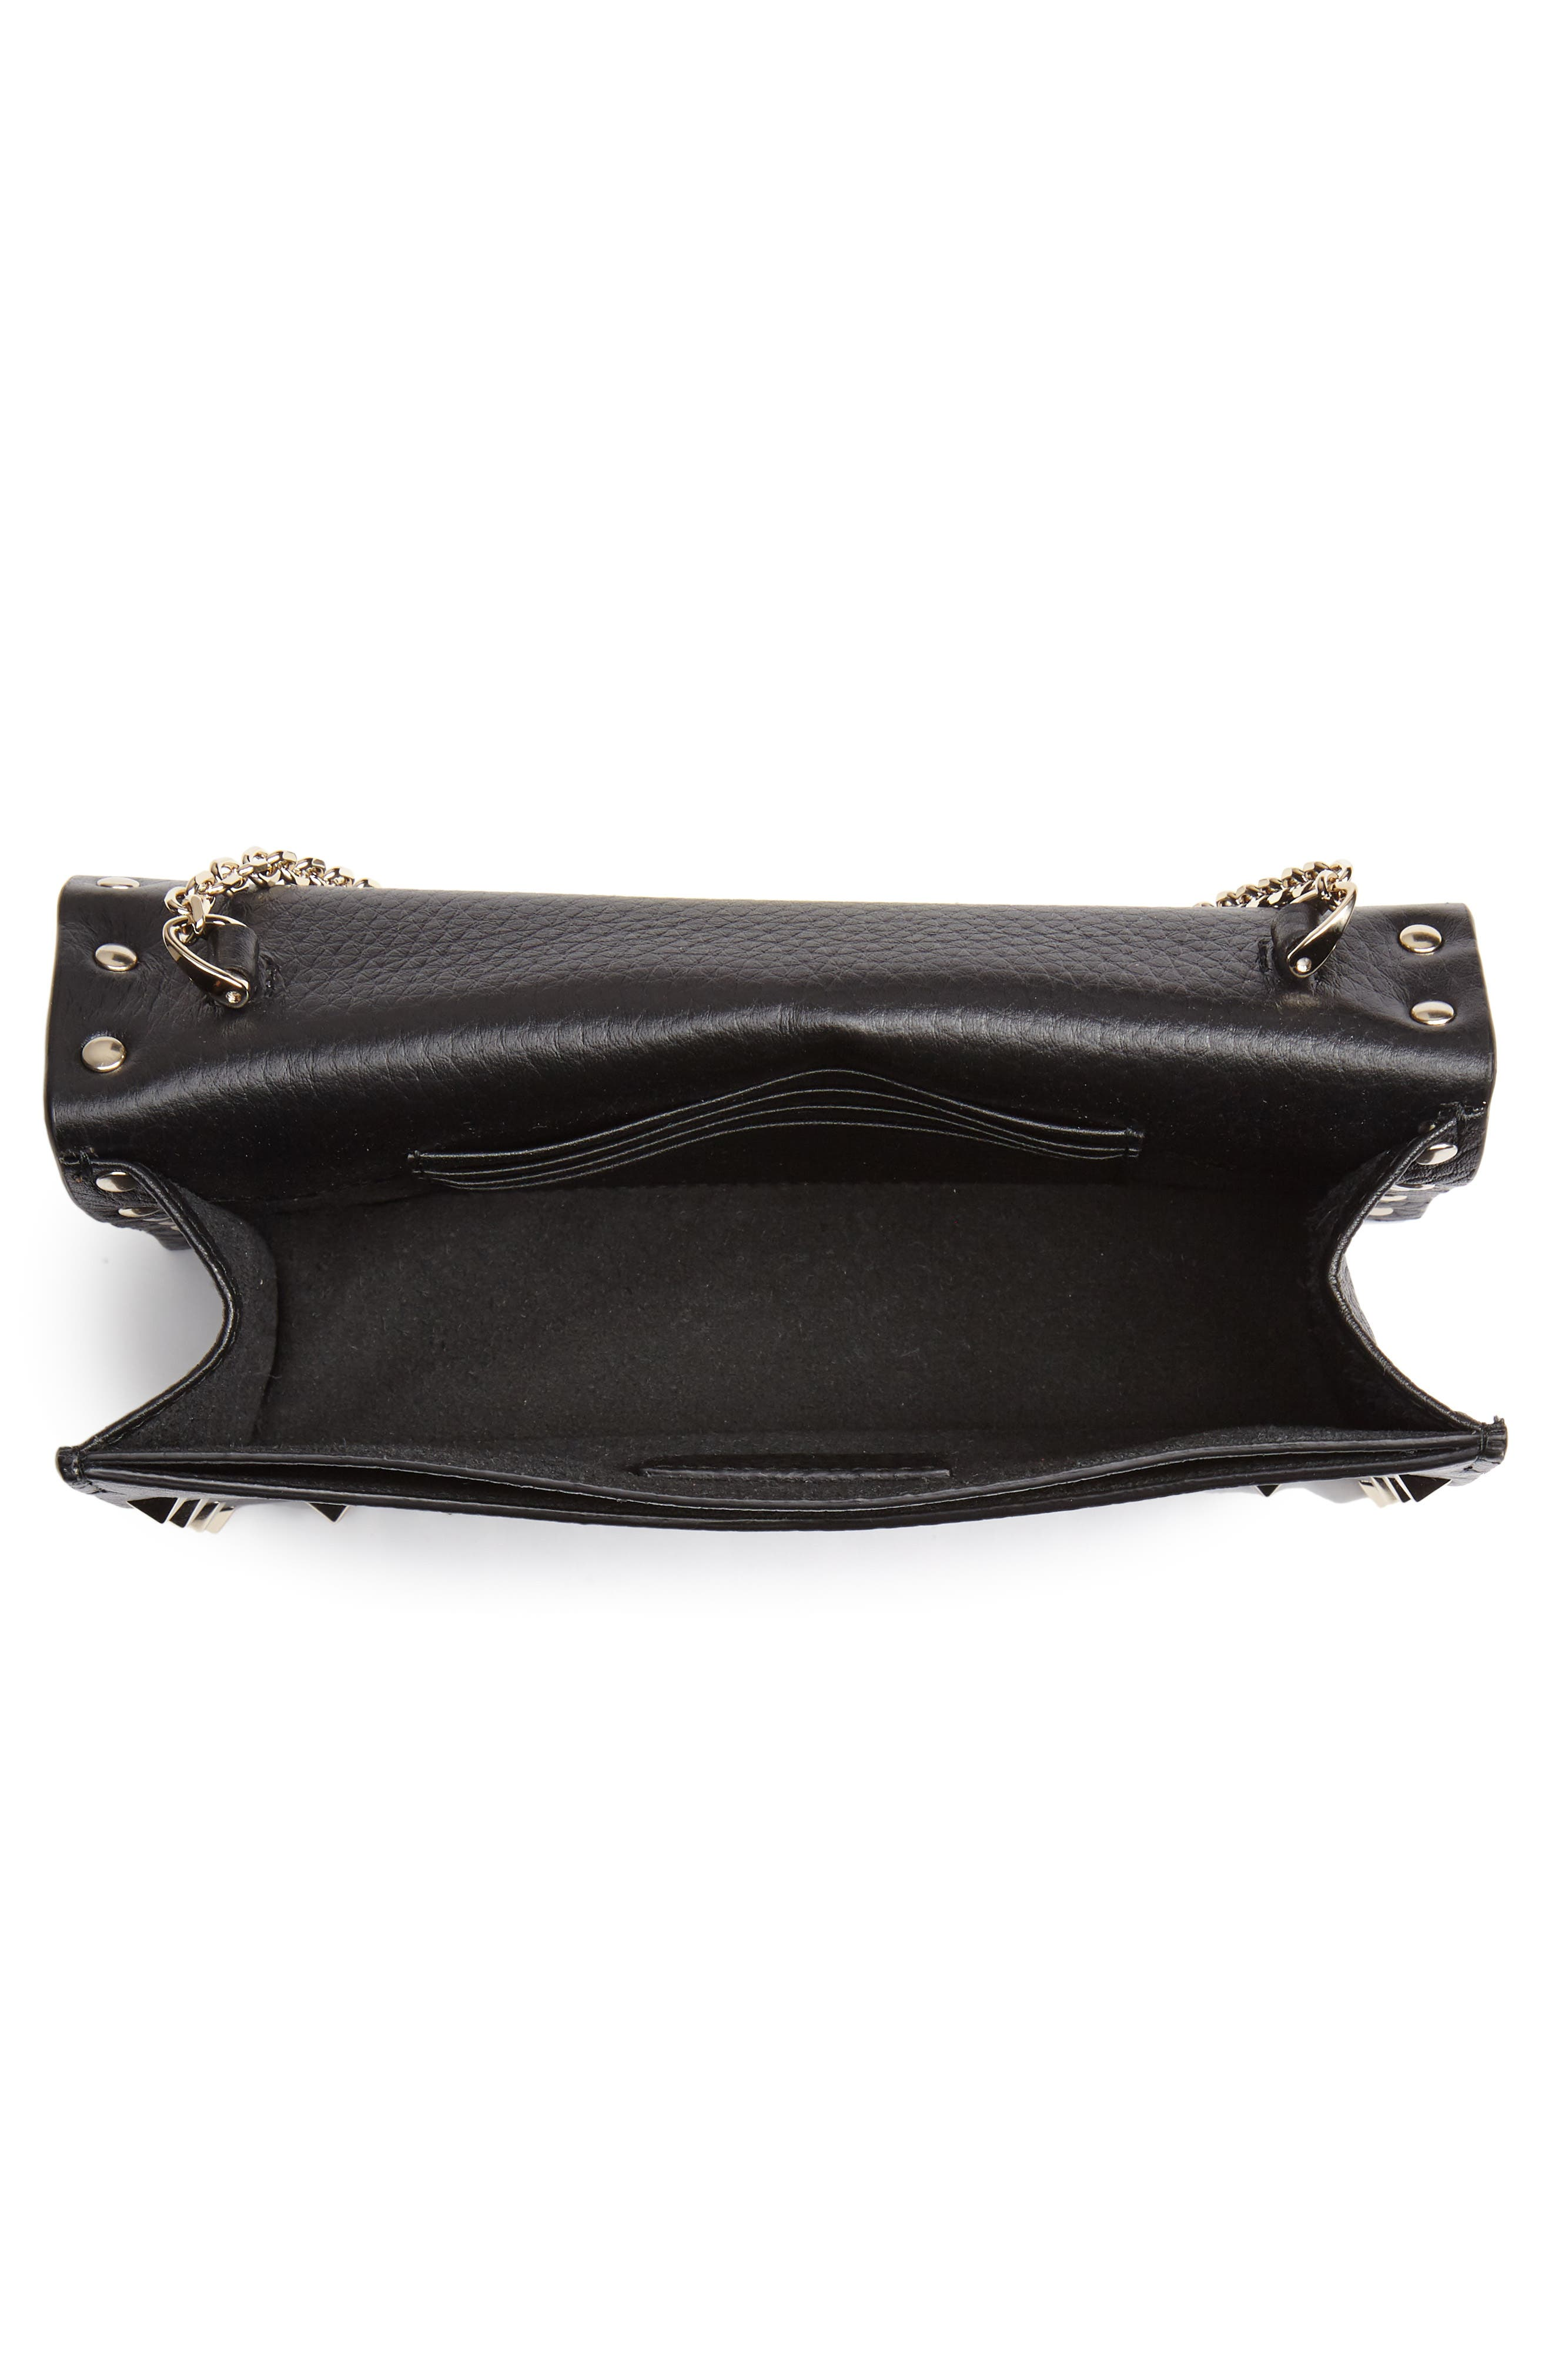 VALENTINO GARAVANI,                             Rockstud Calfskin Leather Envelope Pouch,                             Alternate thumbnail 4, color,                             NERO